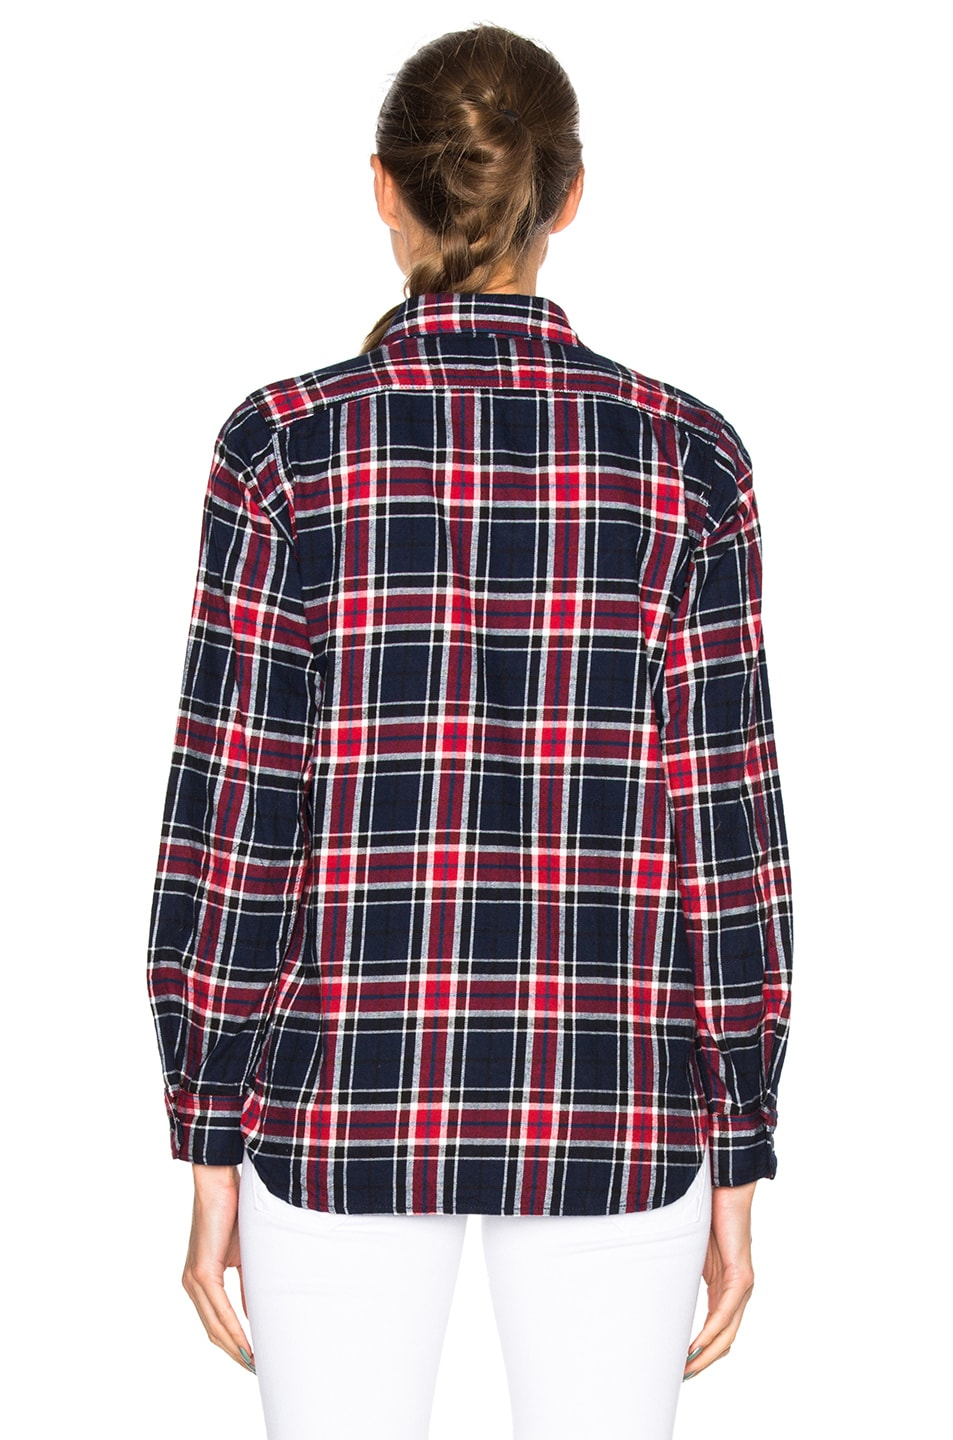 Image 4 of Engineered Garments Big Plaid Flannel Work Shirt in Navy & Red